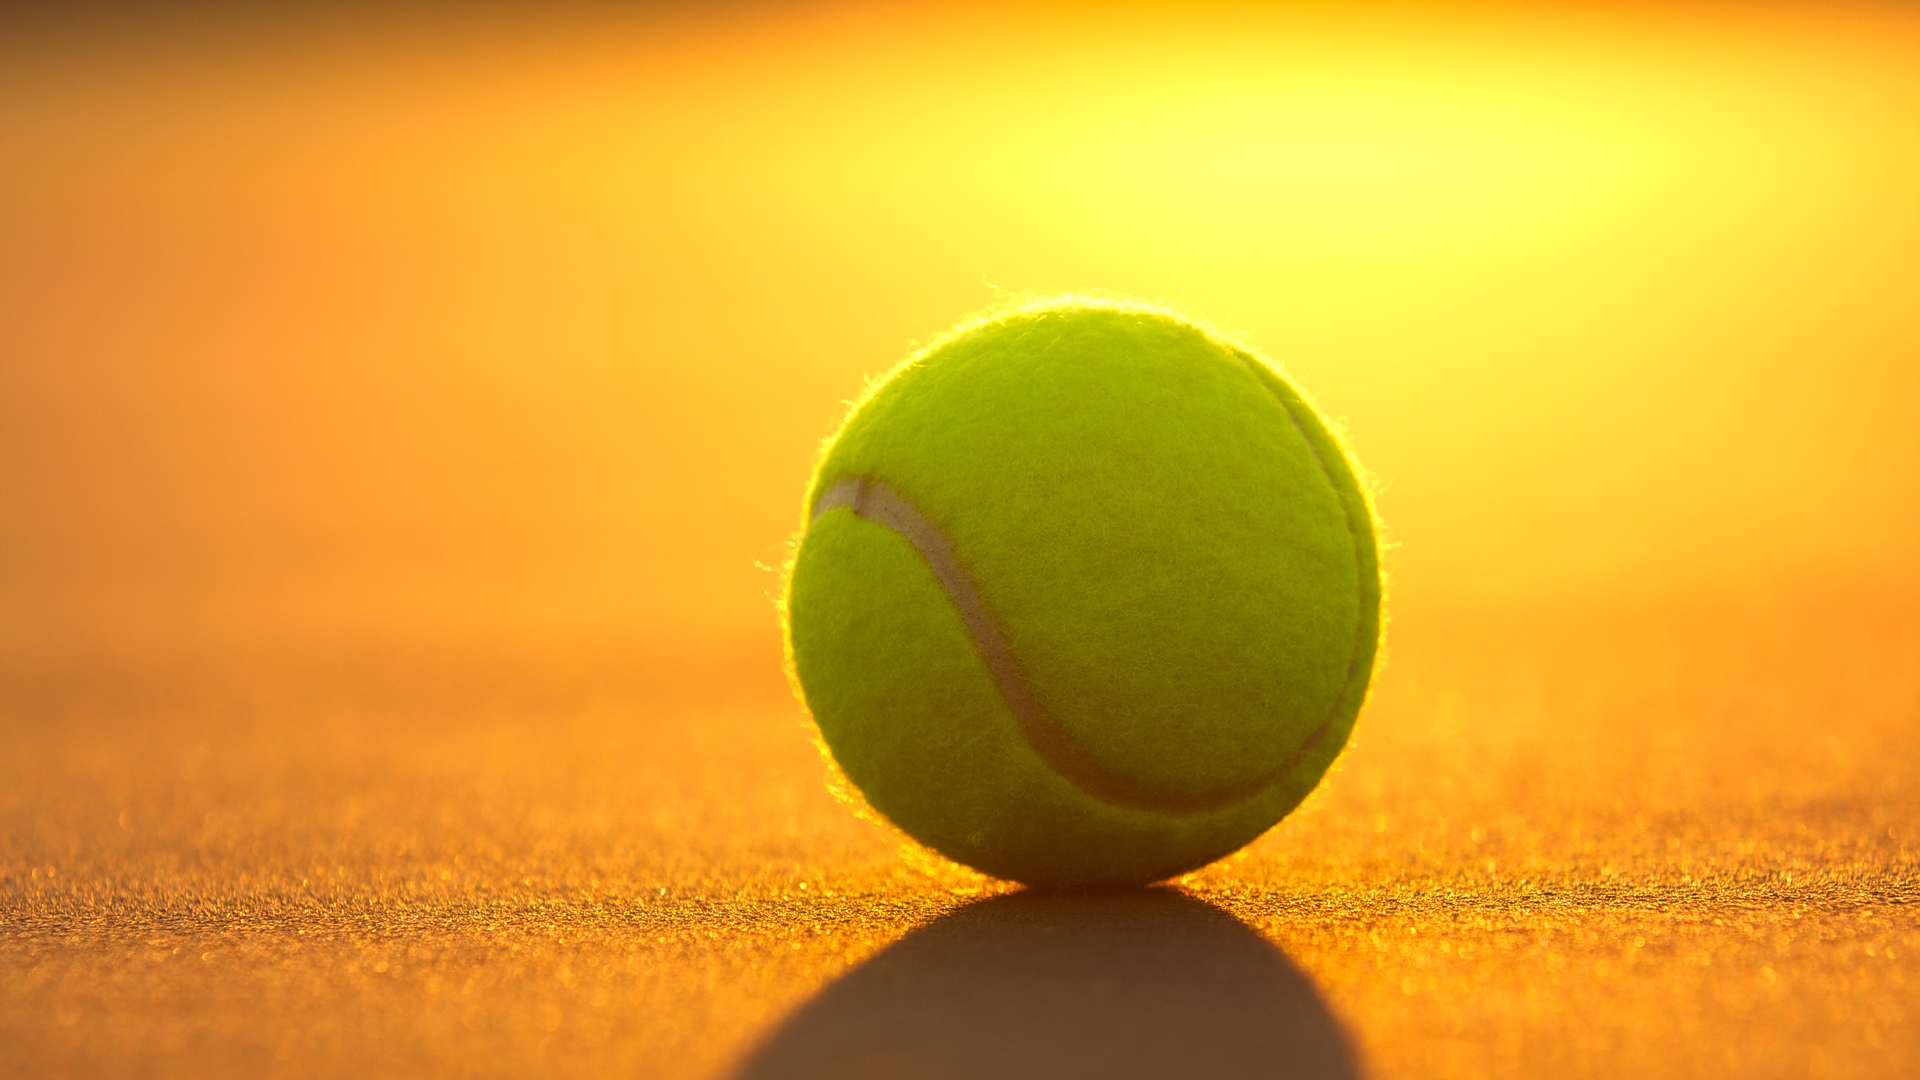 Cute Cats And Dogs Hd Wallpapers Tennis Ball Sport Hd Wallpaper